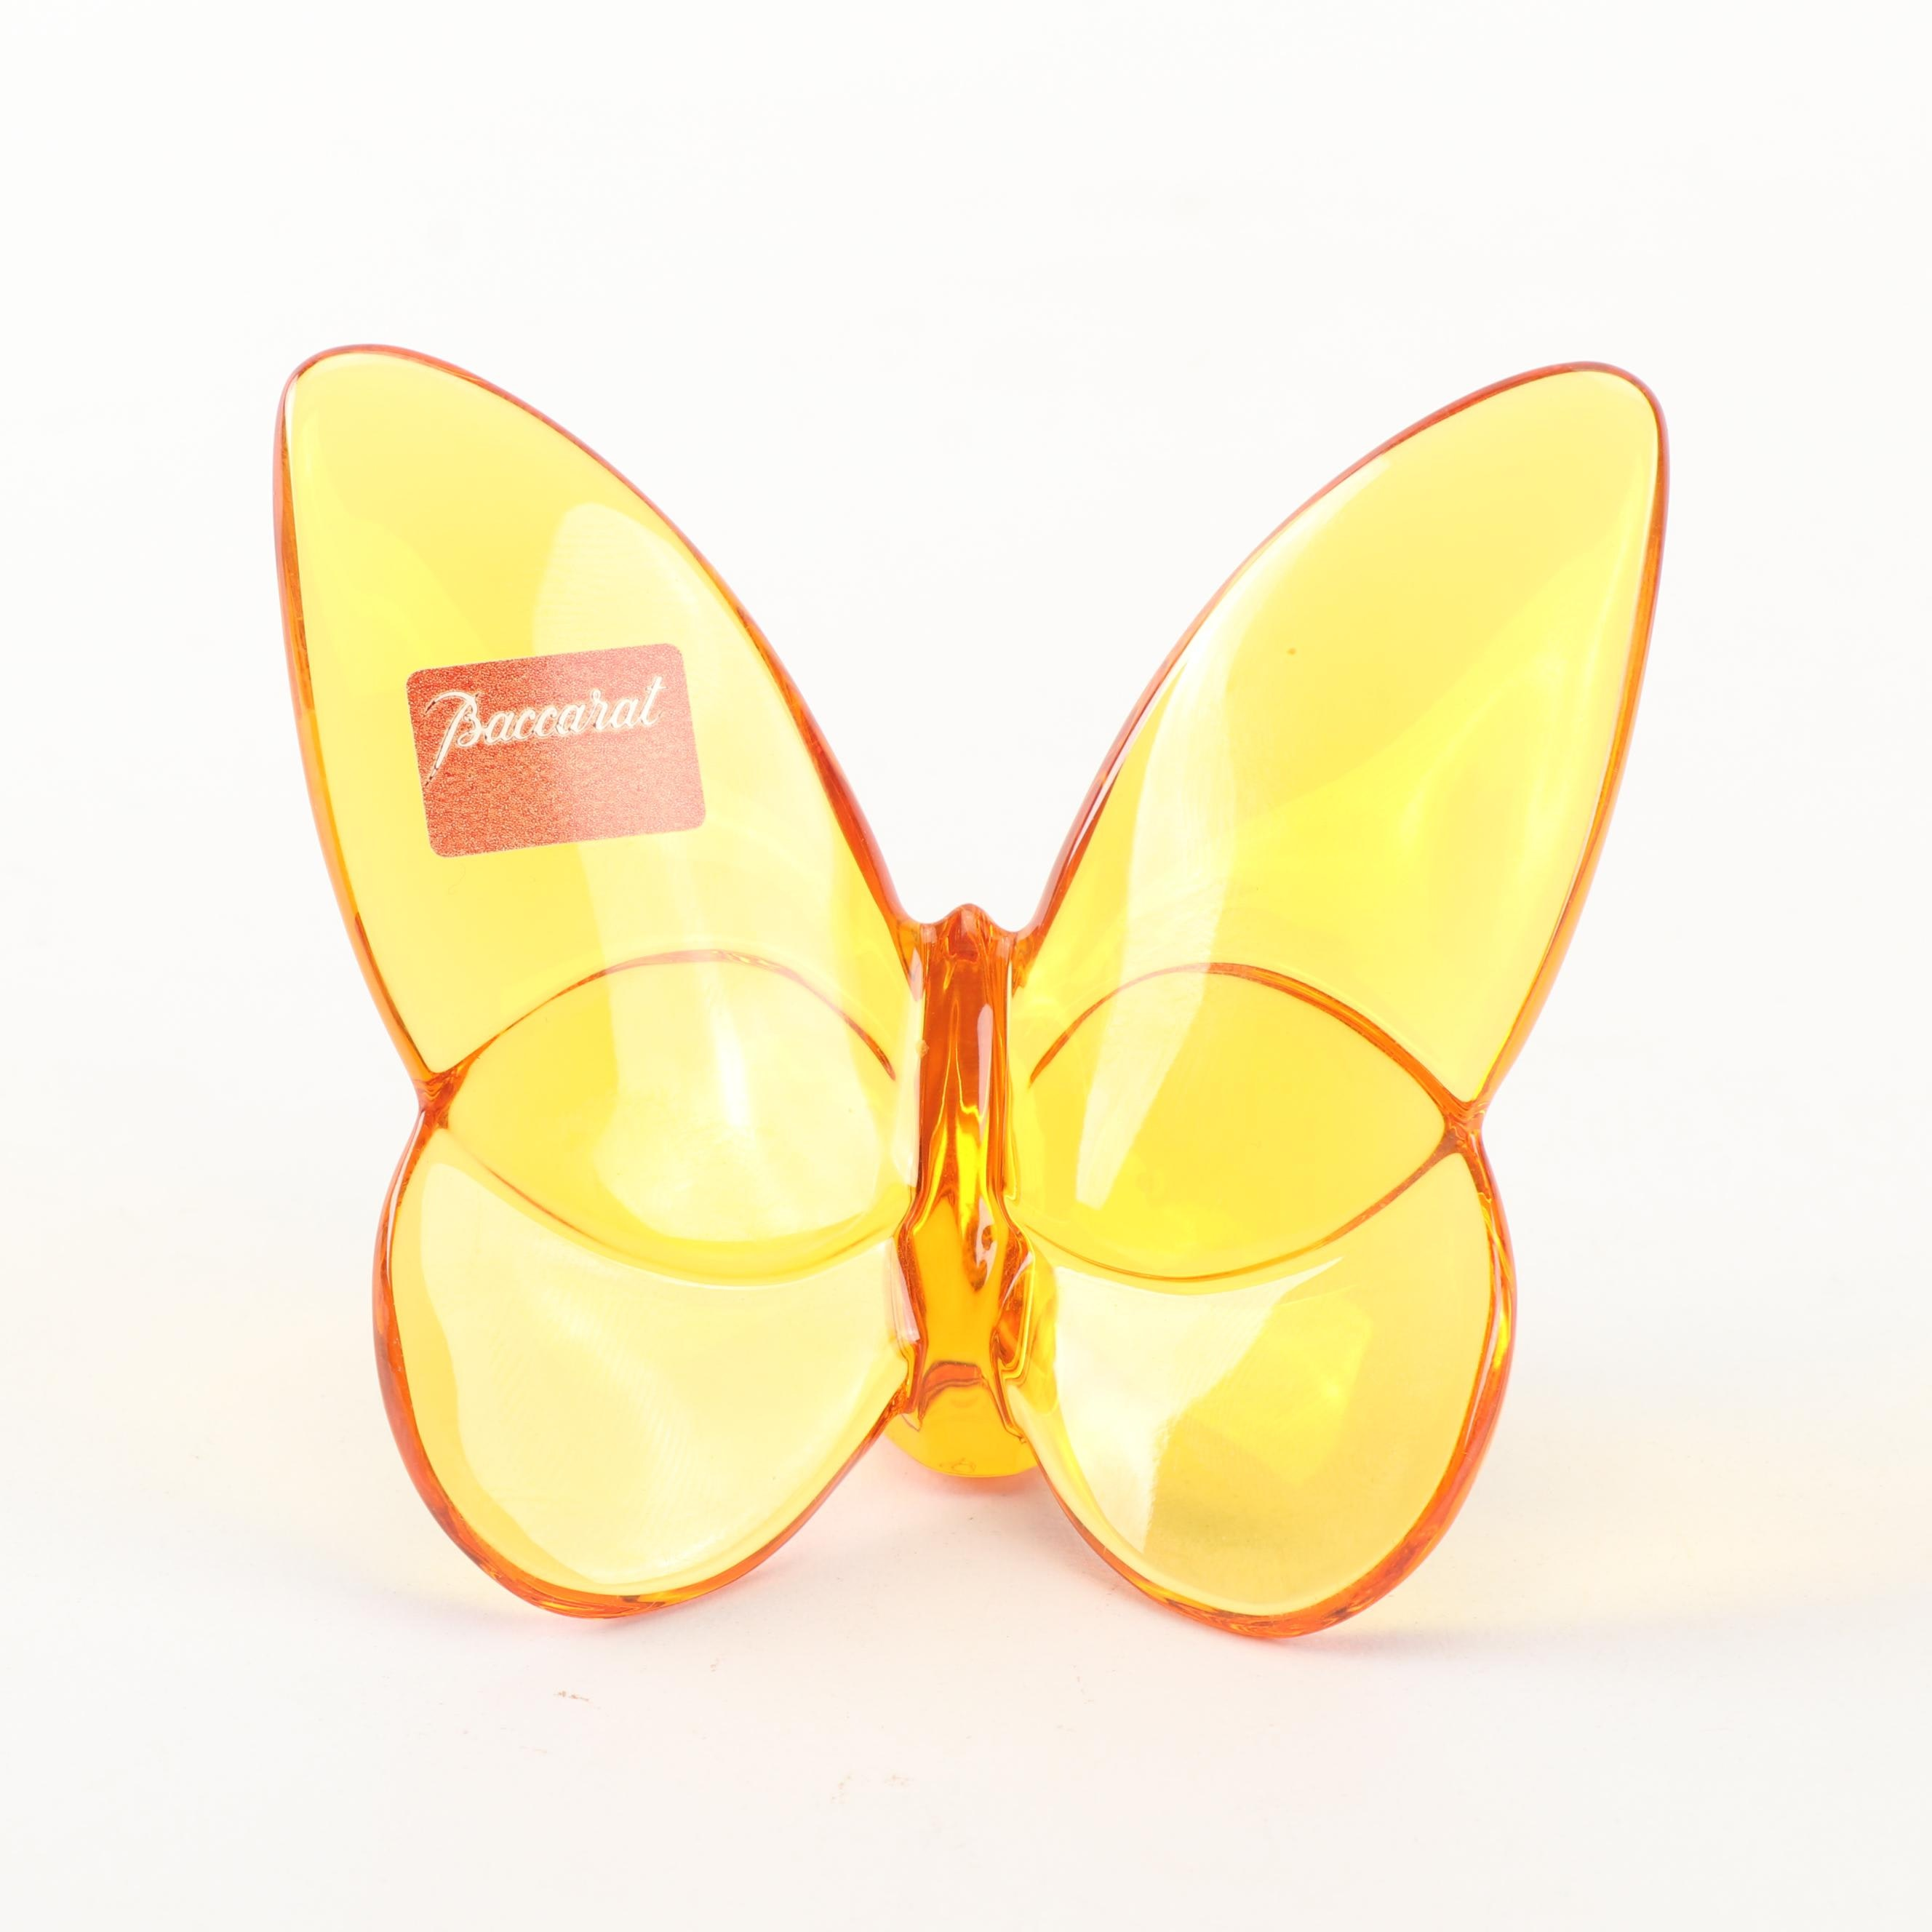 "Baccarat Crystal ""Lucky Butterfly"" Figurine in Amber"